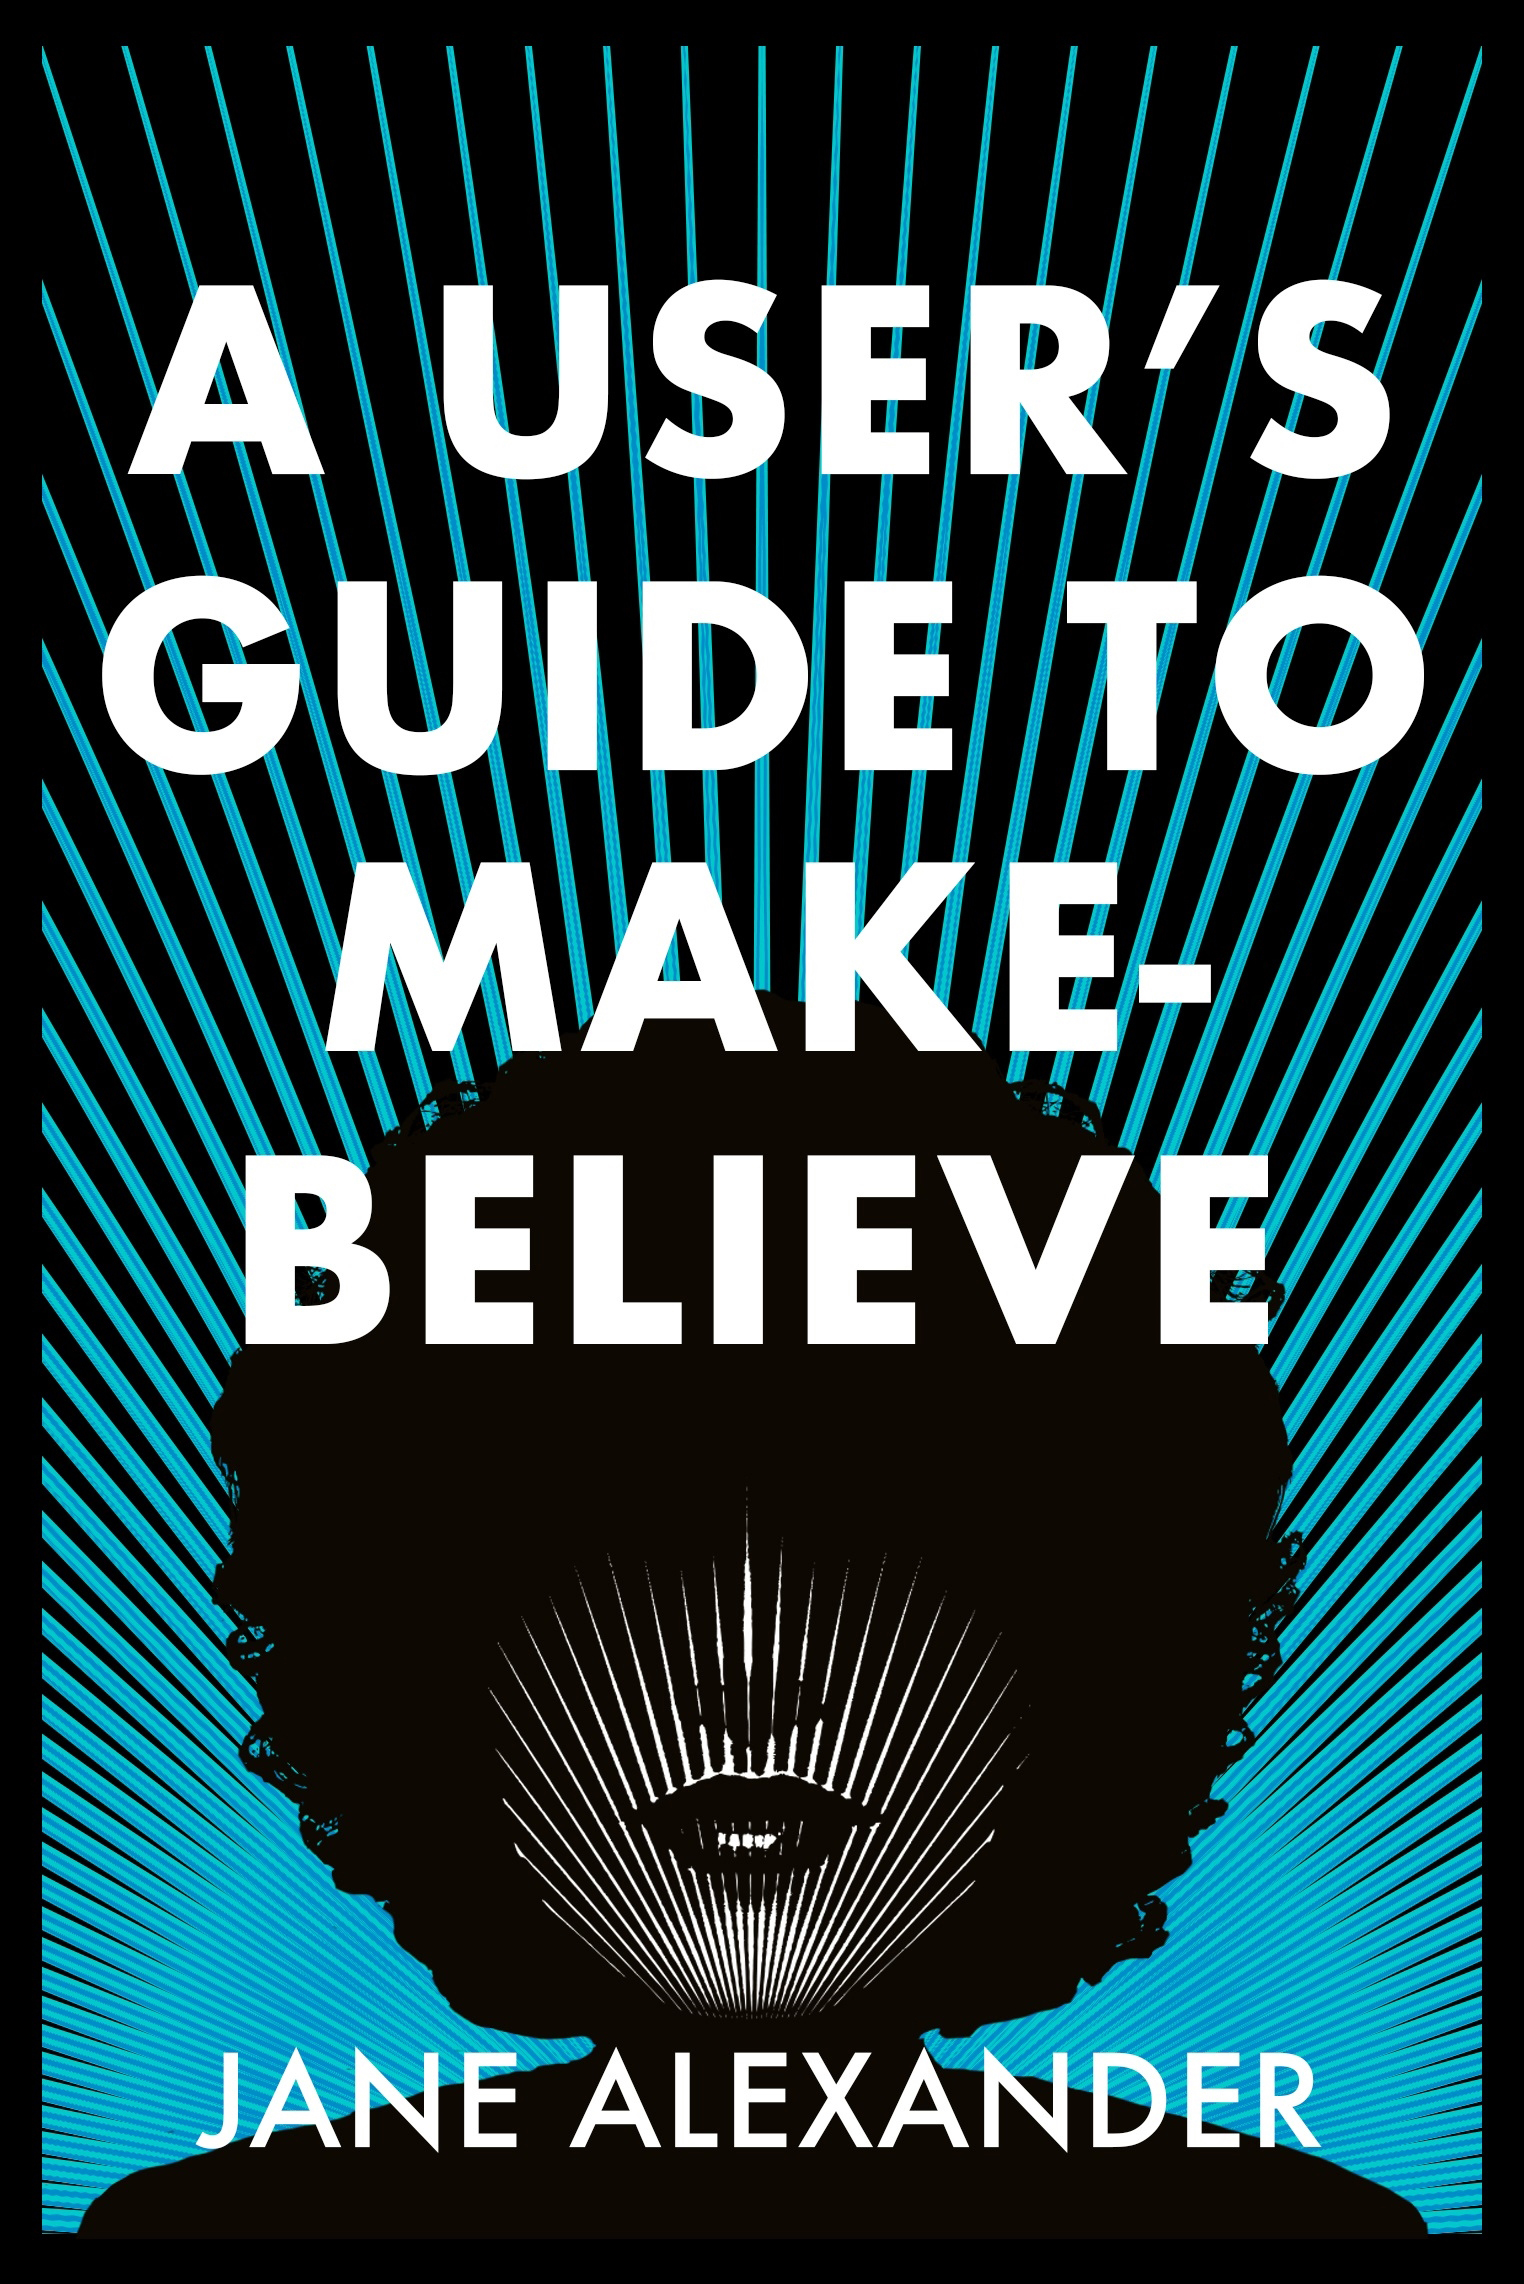 A User's Guide to Make Believe Cover